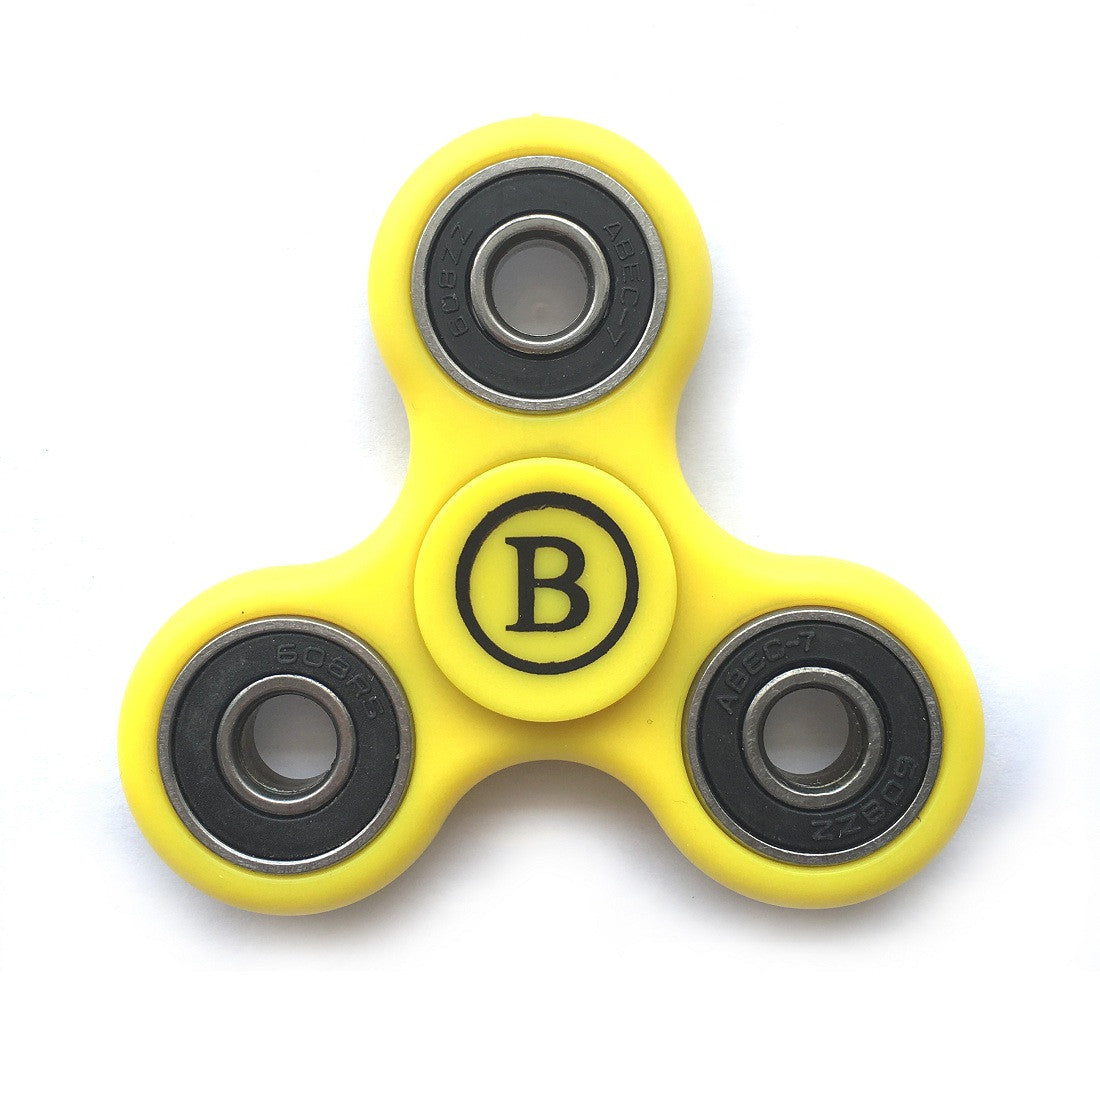 Fidget Hand Spinner High Speed Steel Bearing, Adhd Focus Anxiety Relief Toy - Yellow